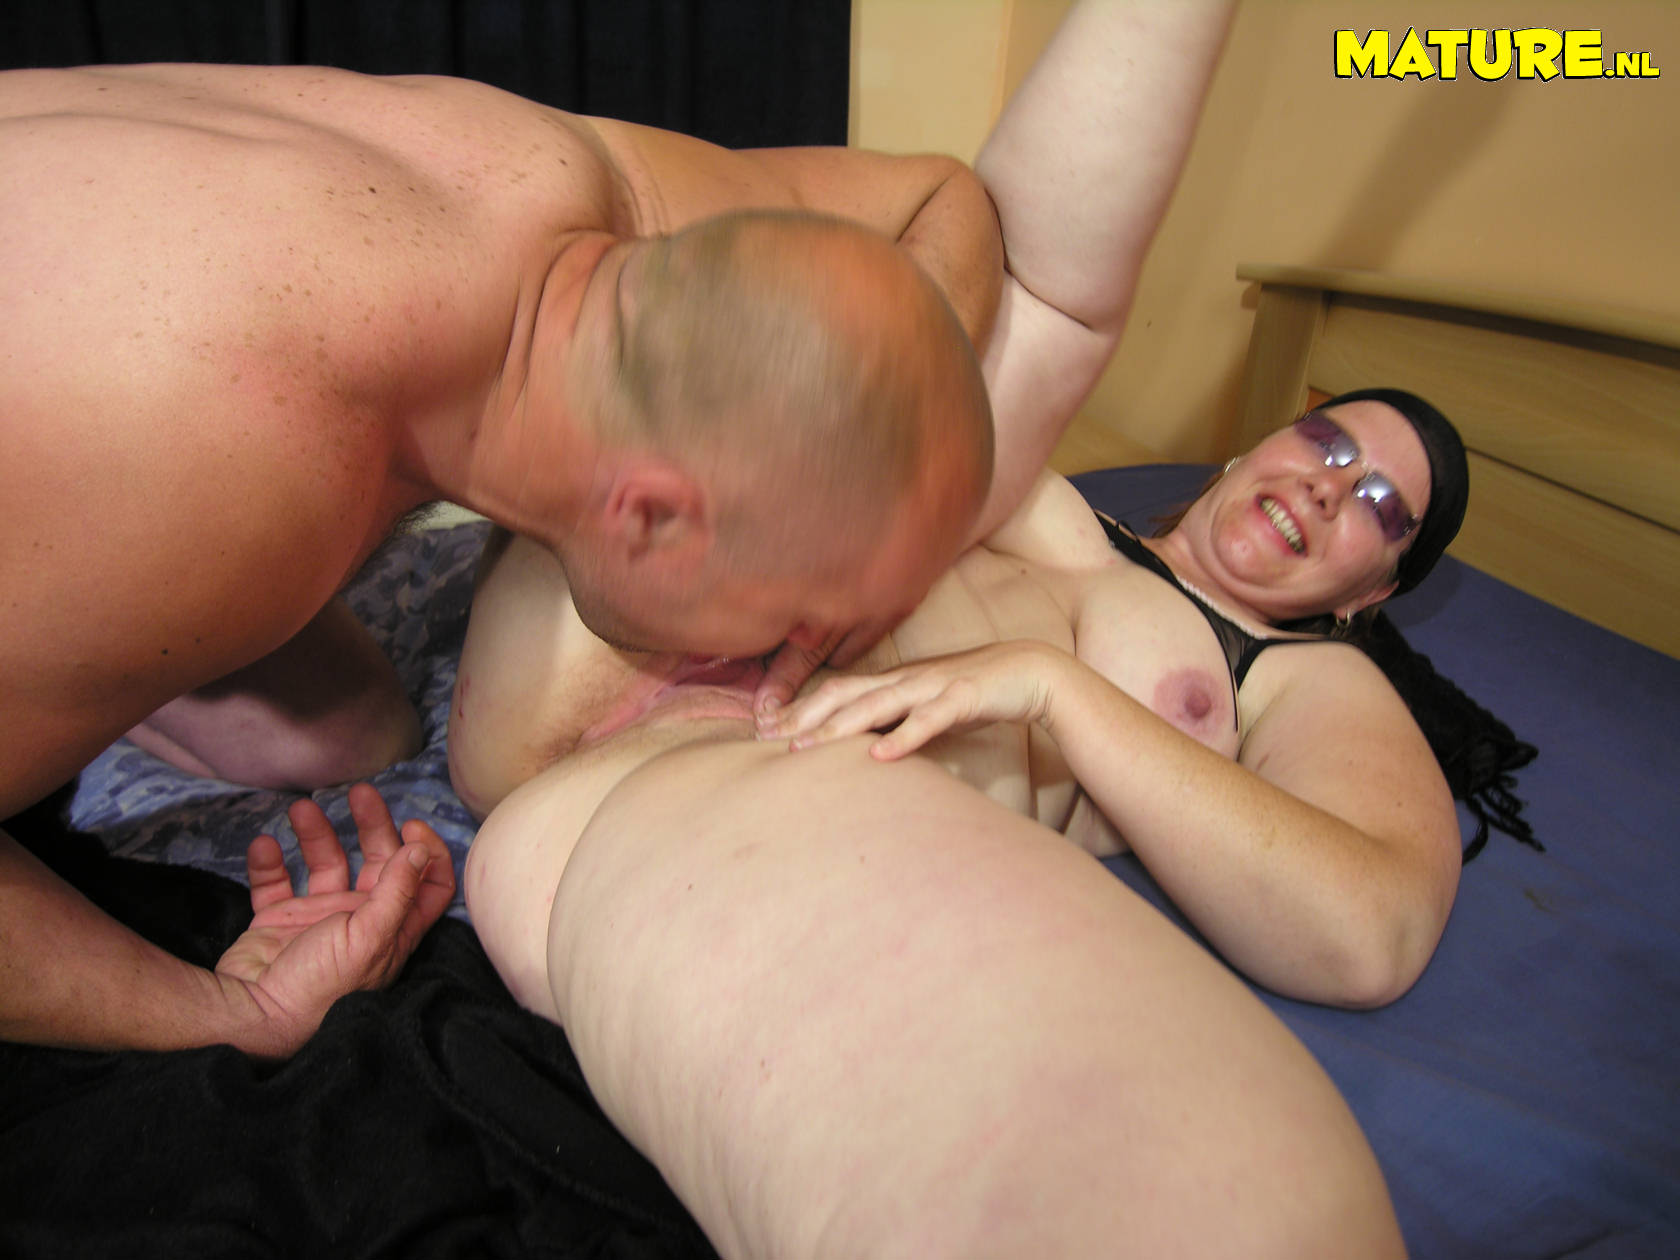 Mature married couple fucks very well 7